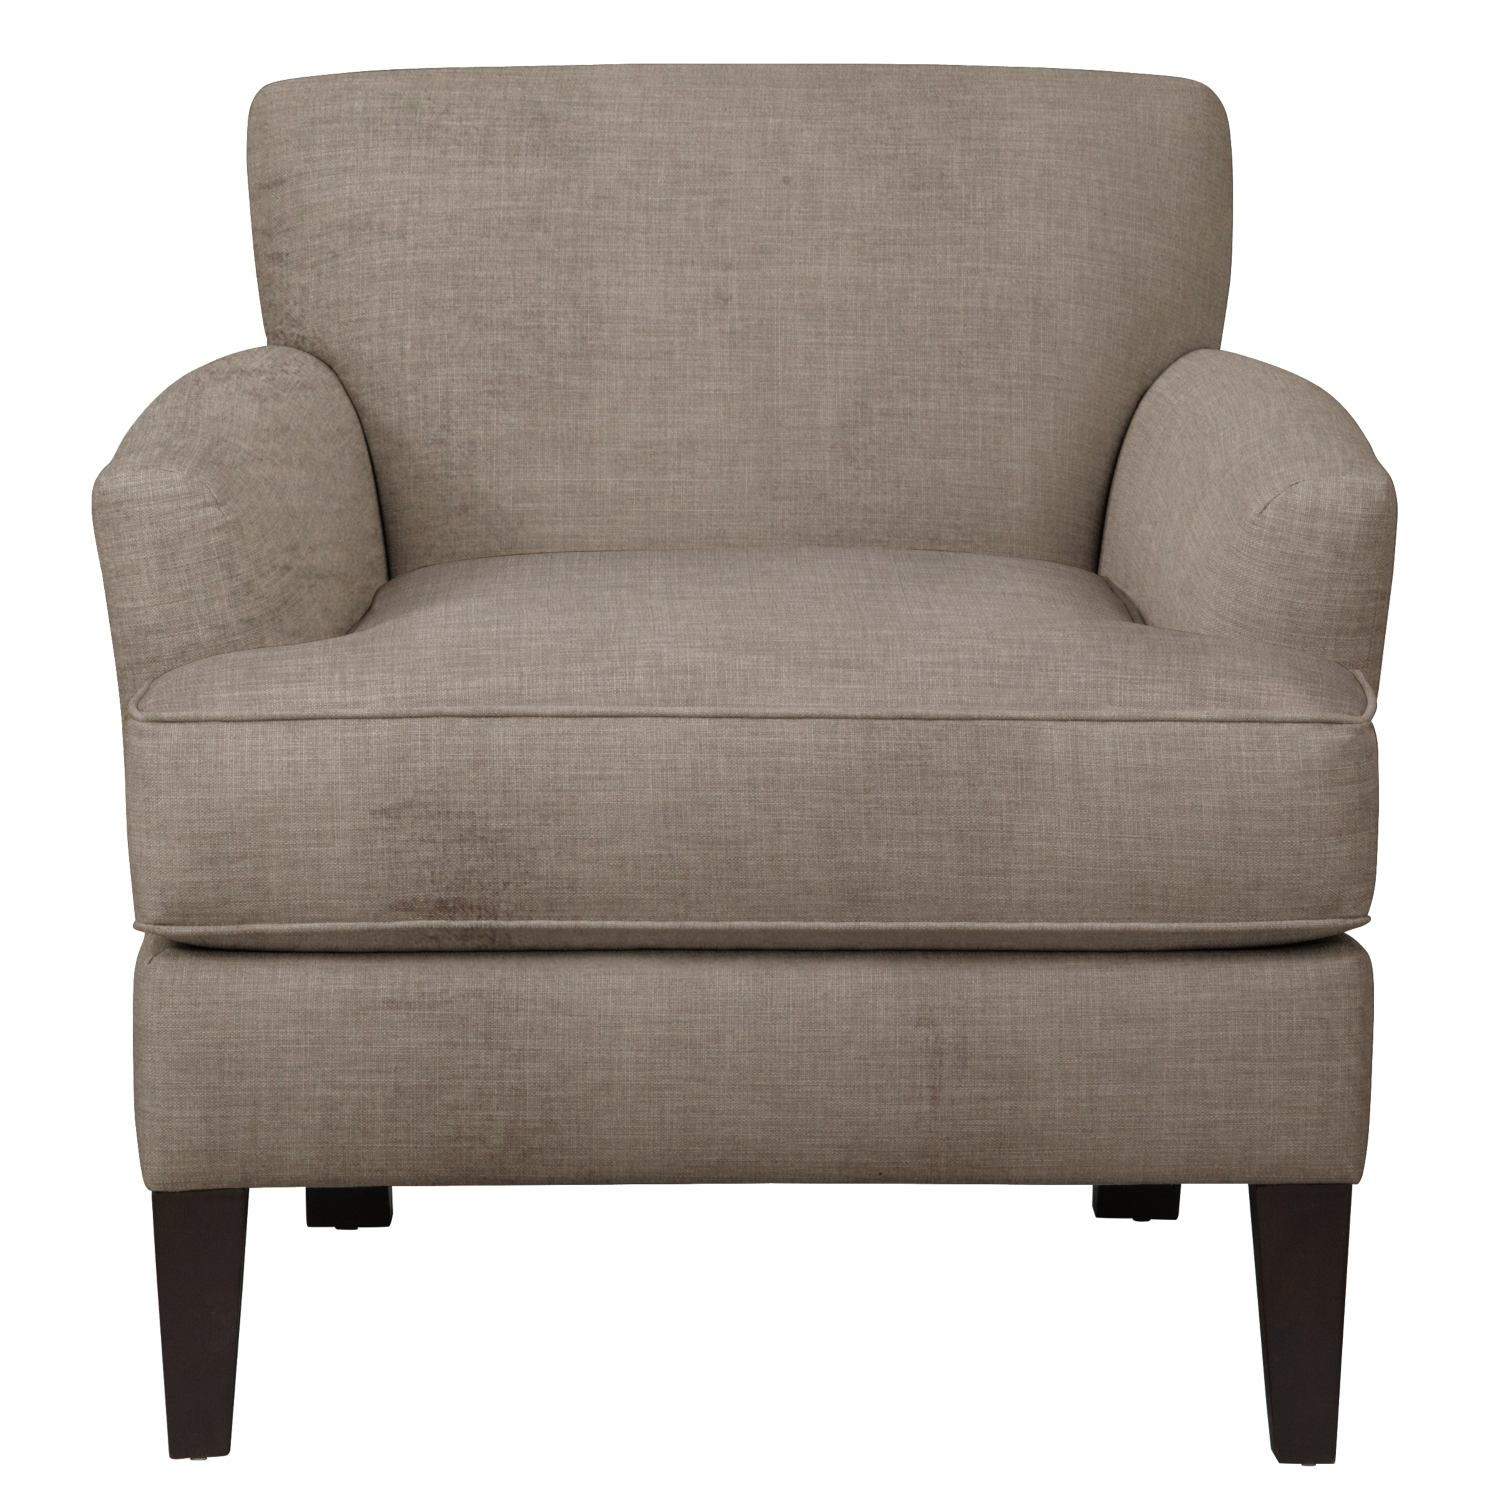 Living Room Furniture - Marcus Chair w/ Oakley III Granite Fabric